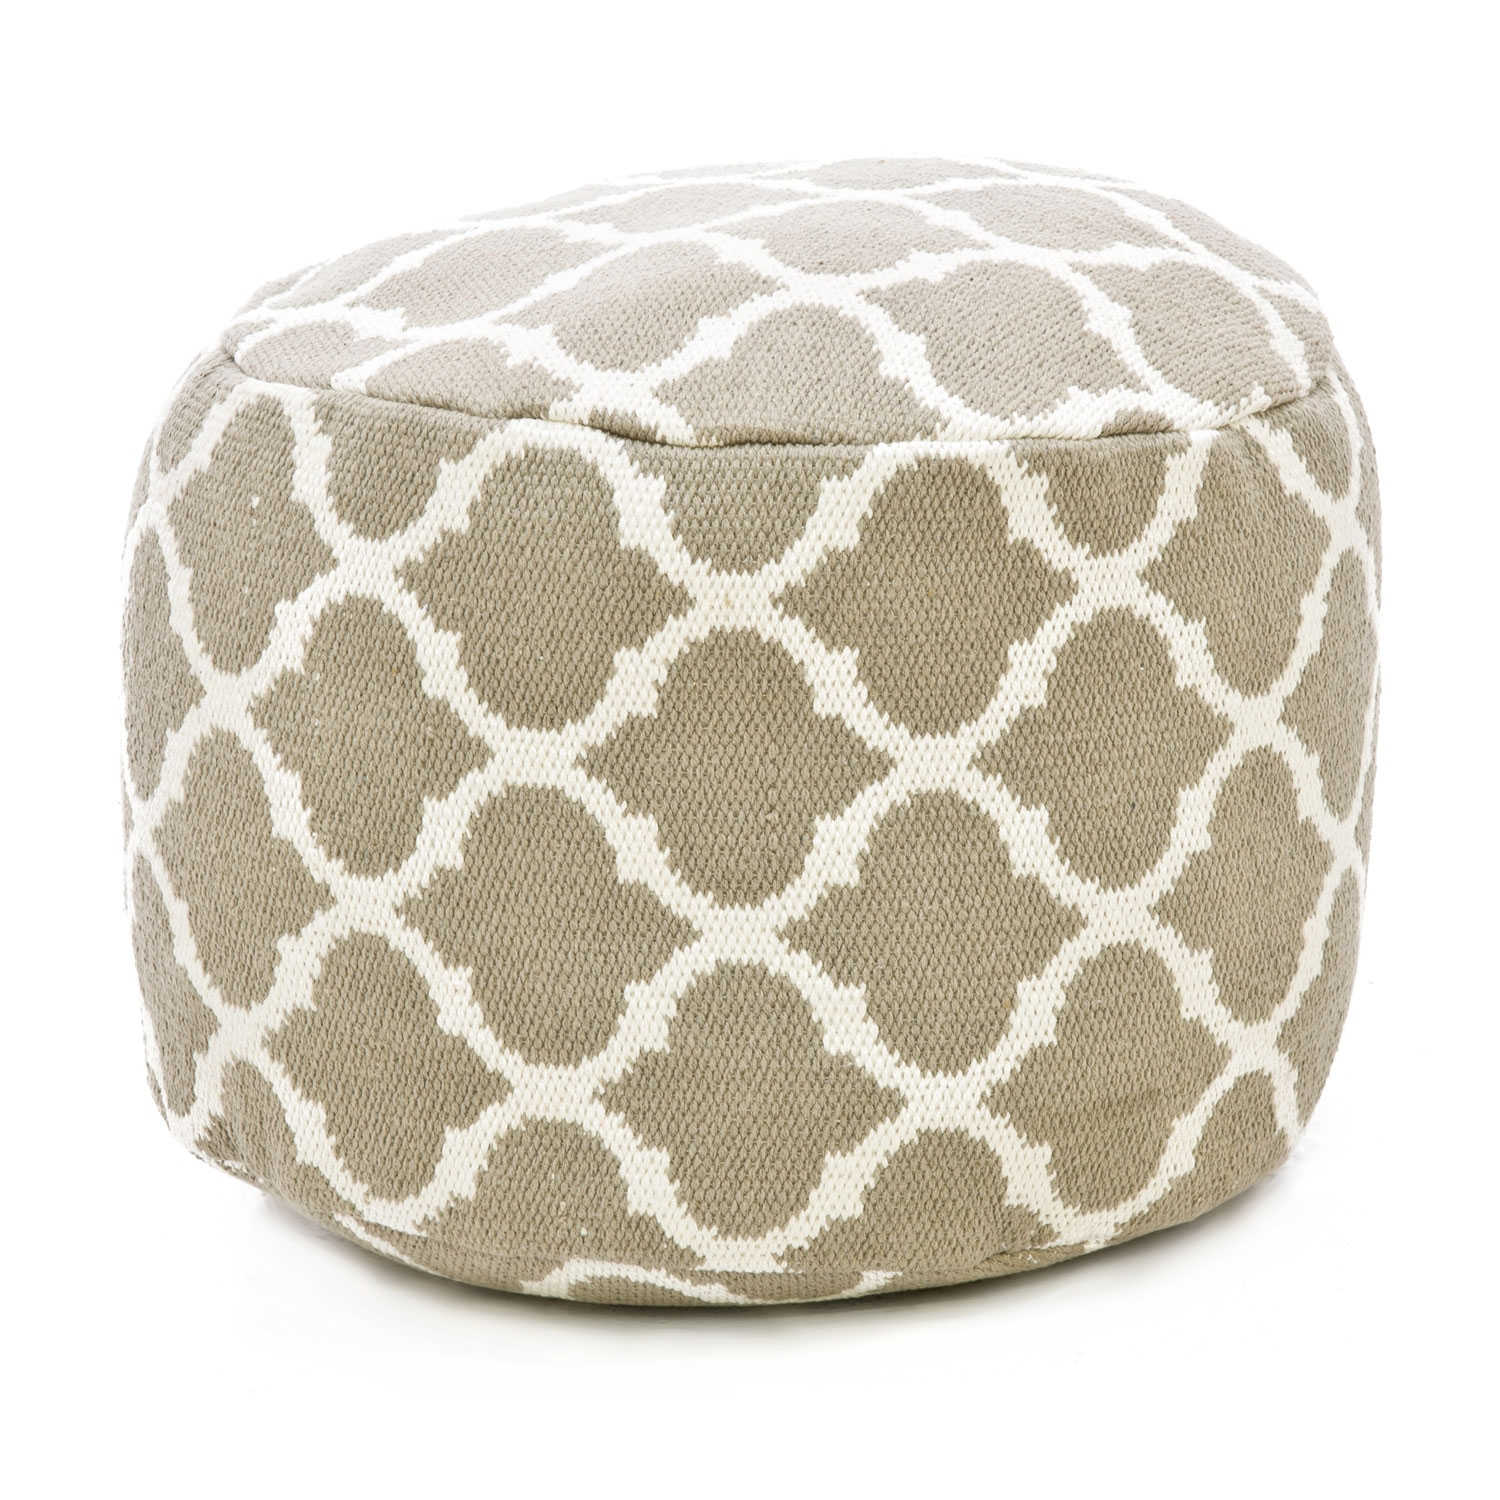 Pouffe For Tesco Footstools And Pouffes (Image 14 of 15)